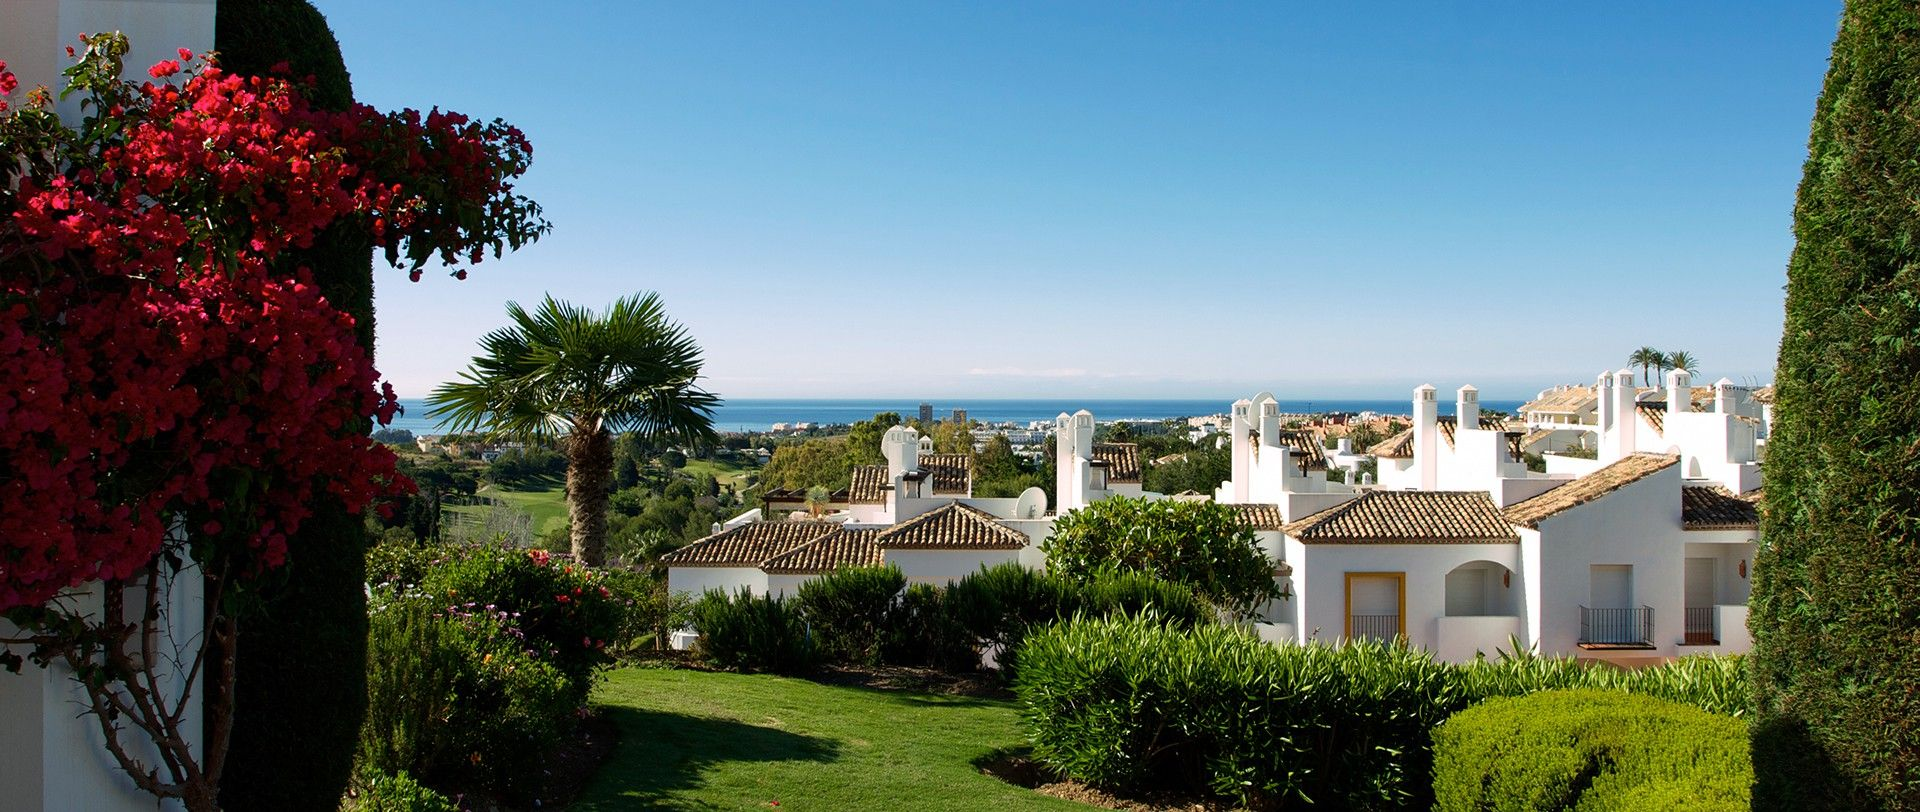 Marbella with its urban areas